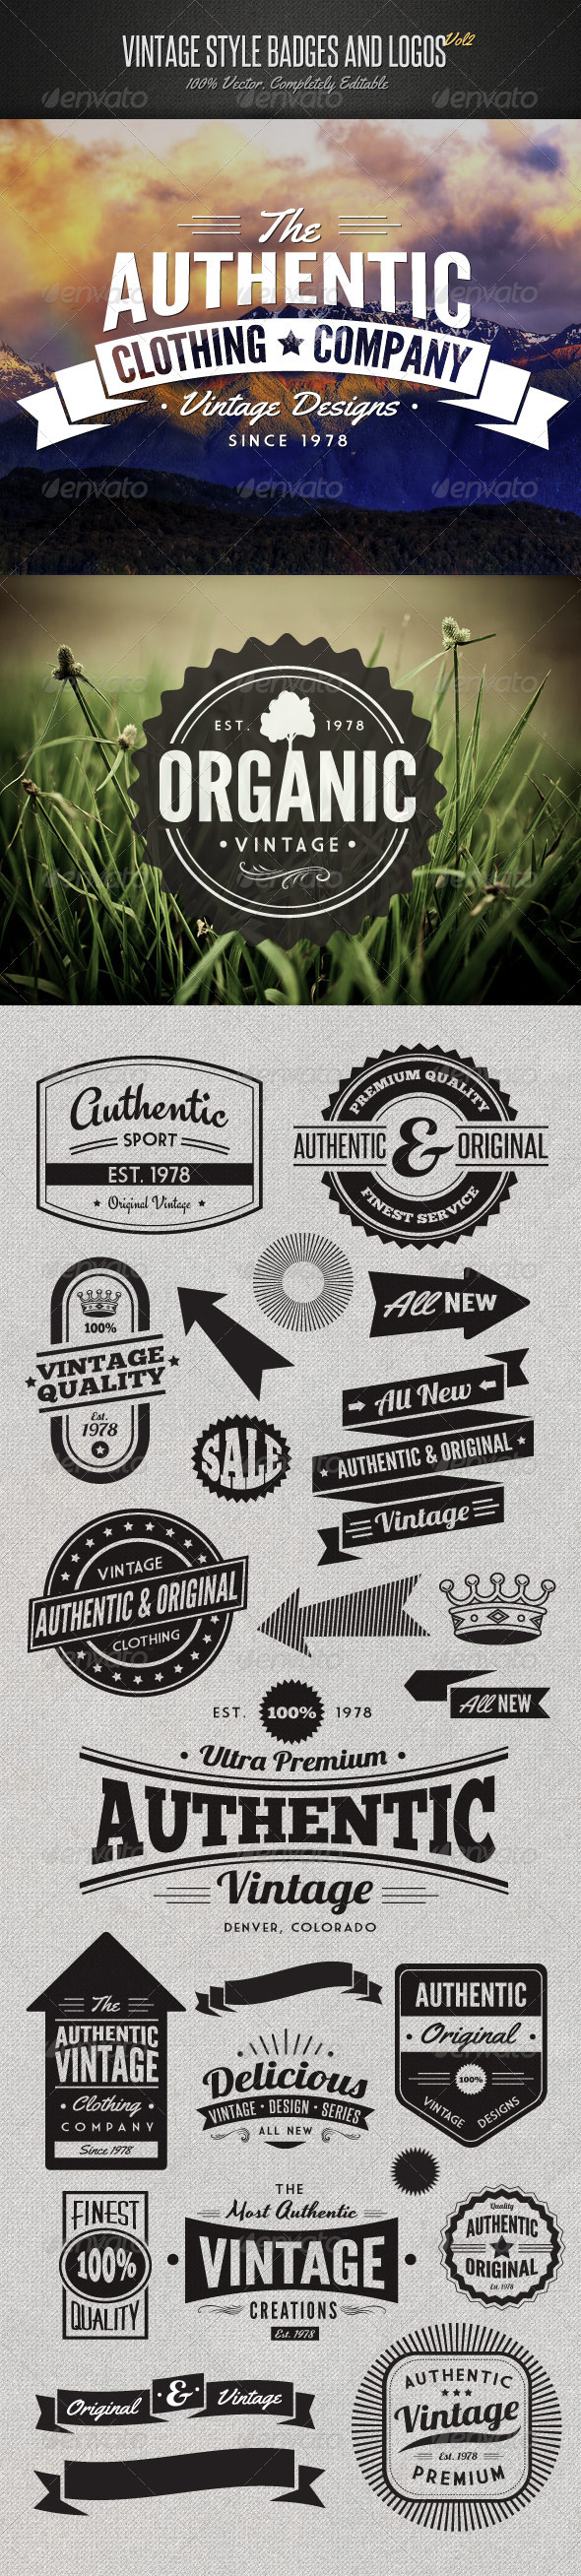 Vintage Style Badges and Logos Vol 2 - Badges & Stickers Web Elements